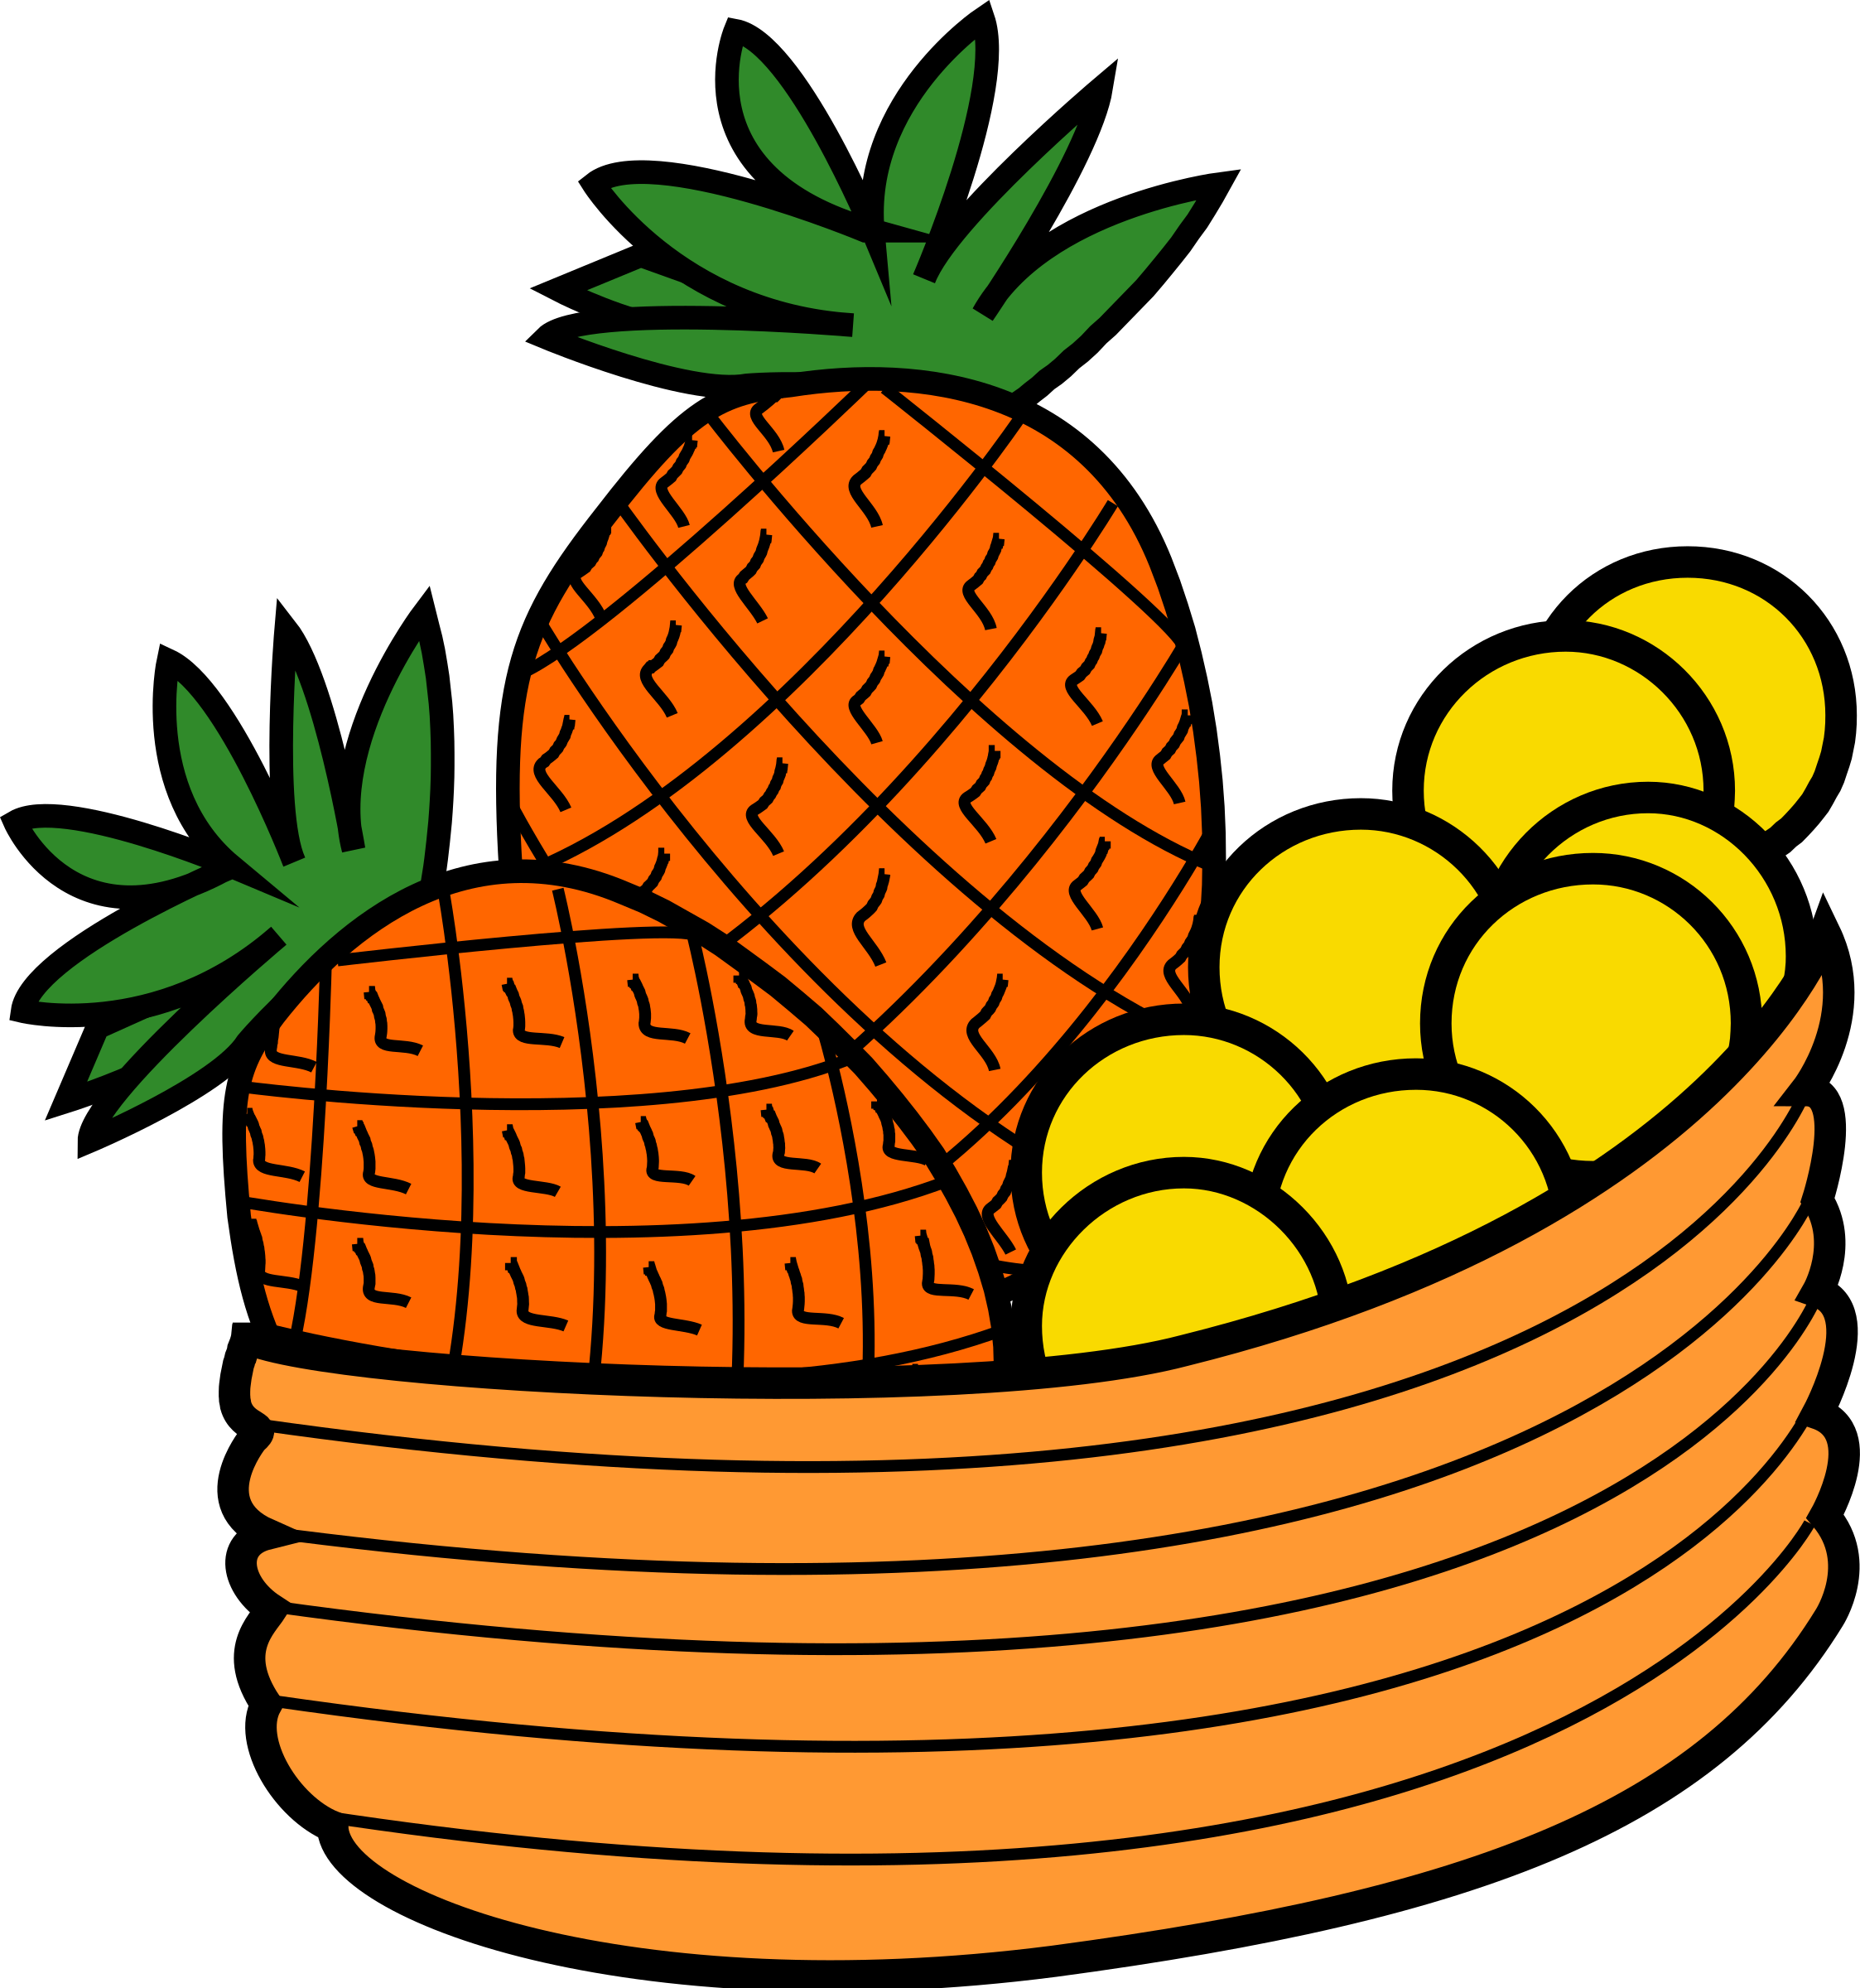 clip freeuse library Washing clipart fruit. Bowl of icons png